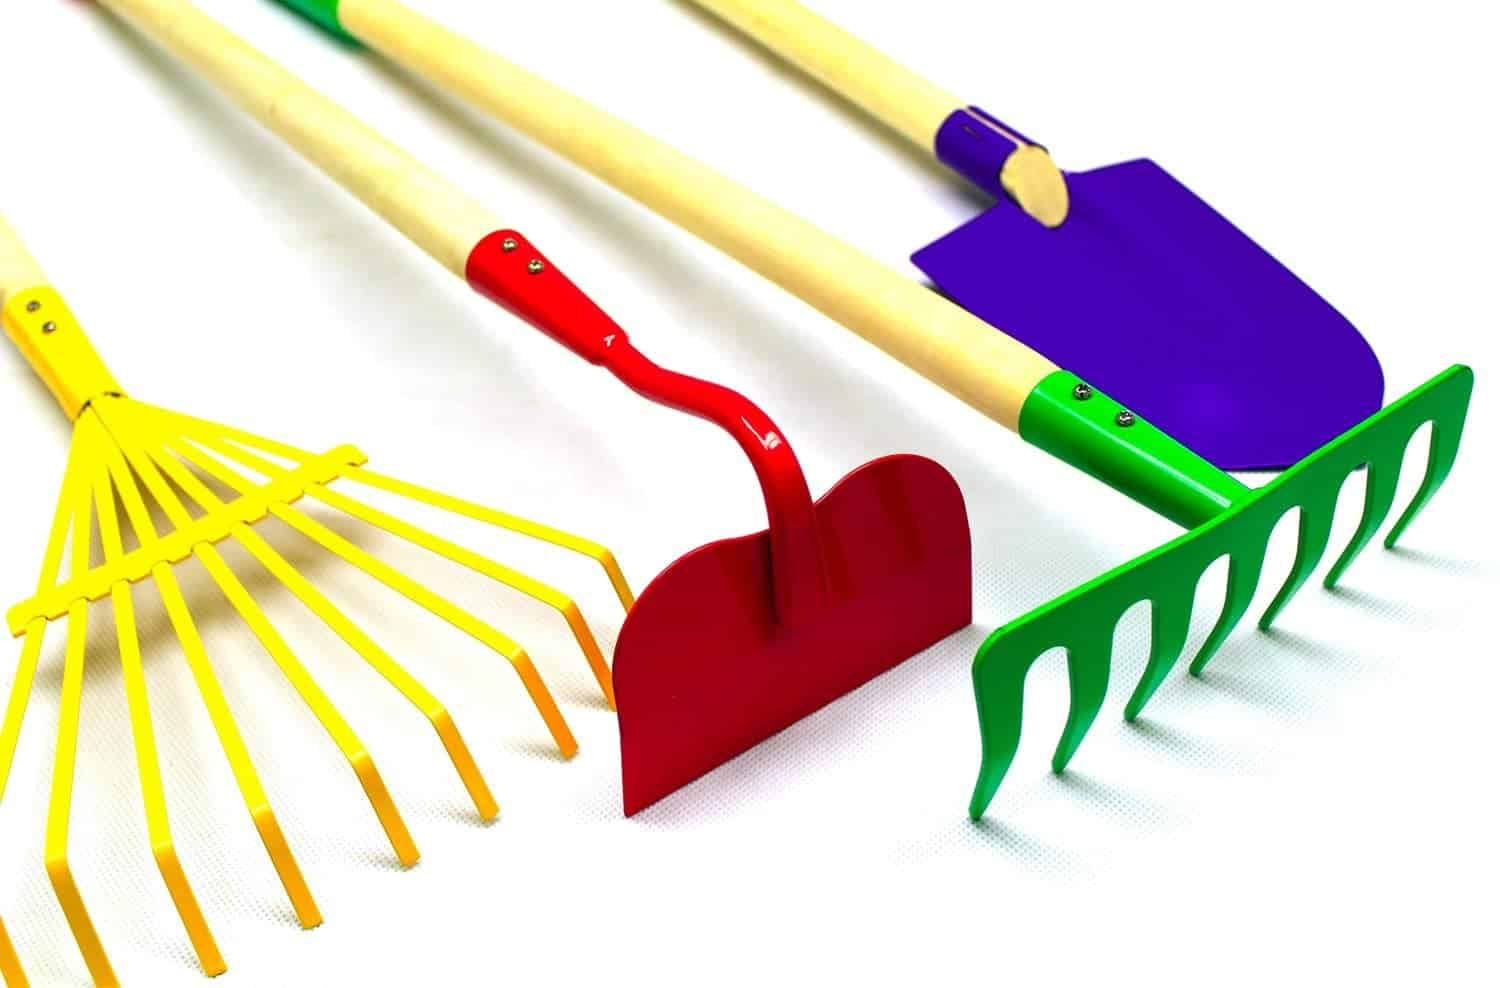 10+ Outdoor Boredom Busting Activities for Kids: Garden Tool Set | www.thepinningmama.com